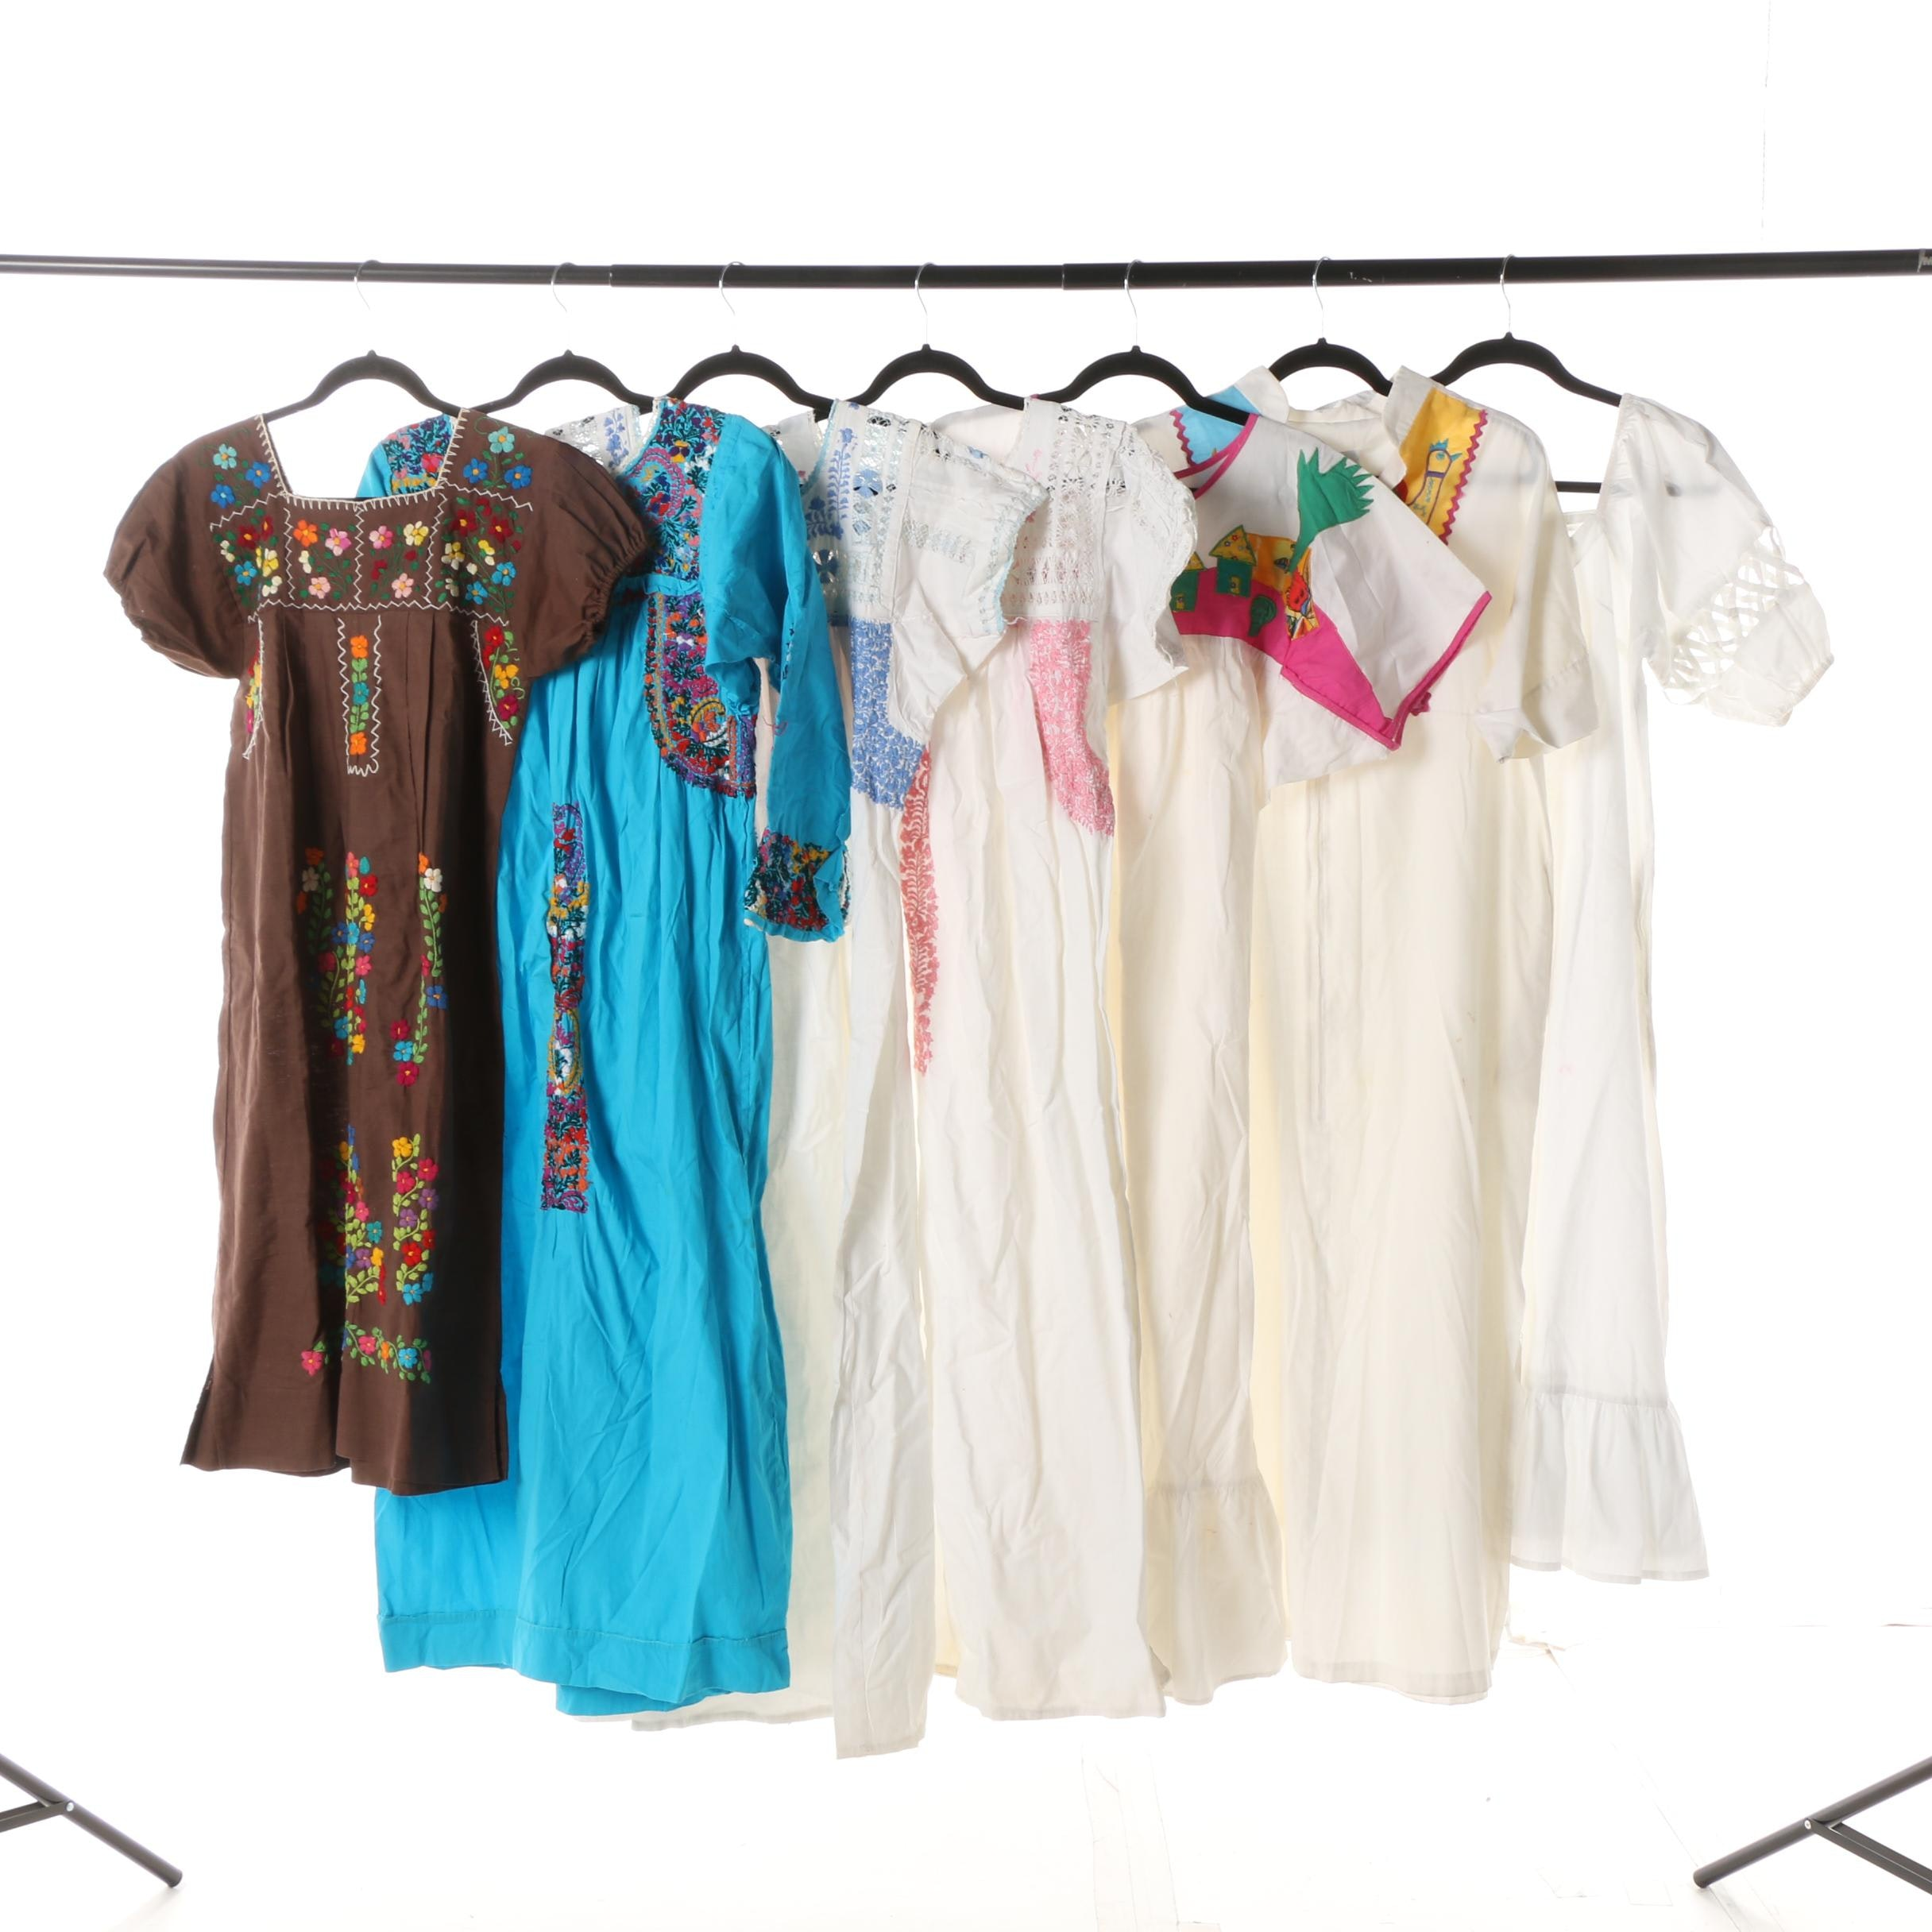 Women's Vintage Embroidered Cotton Caftans and Lounge Wear including Hyacinth